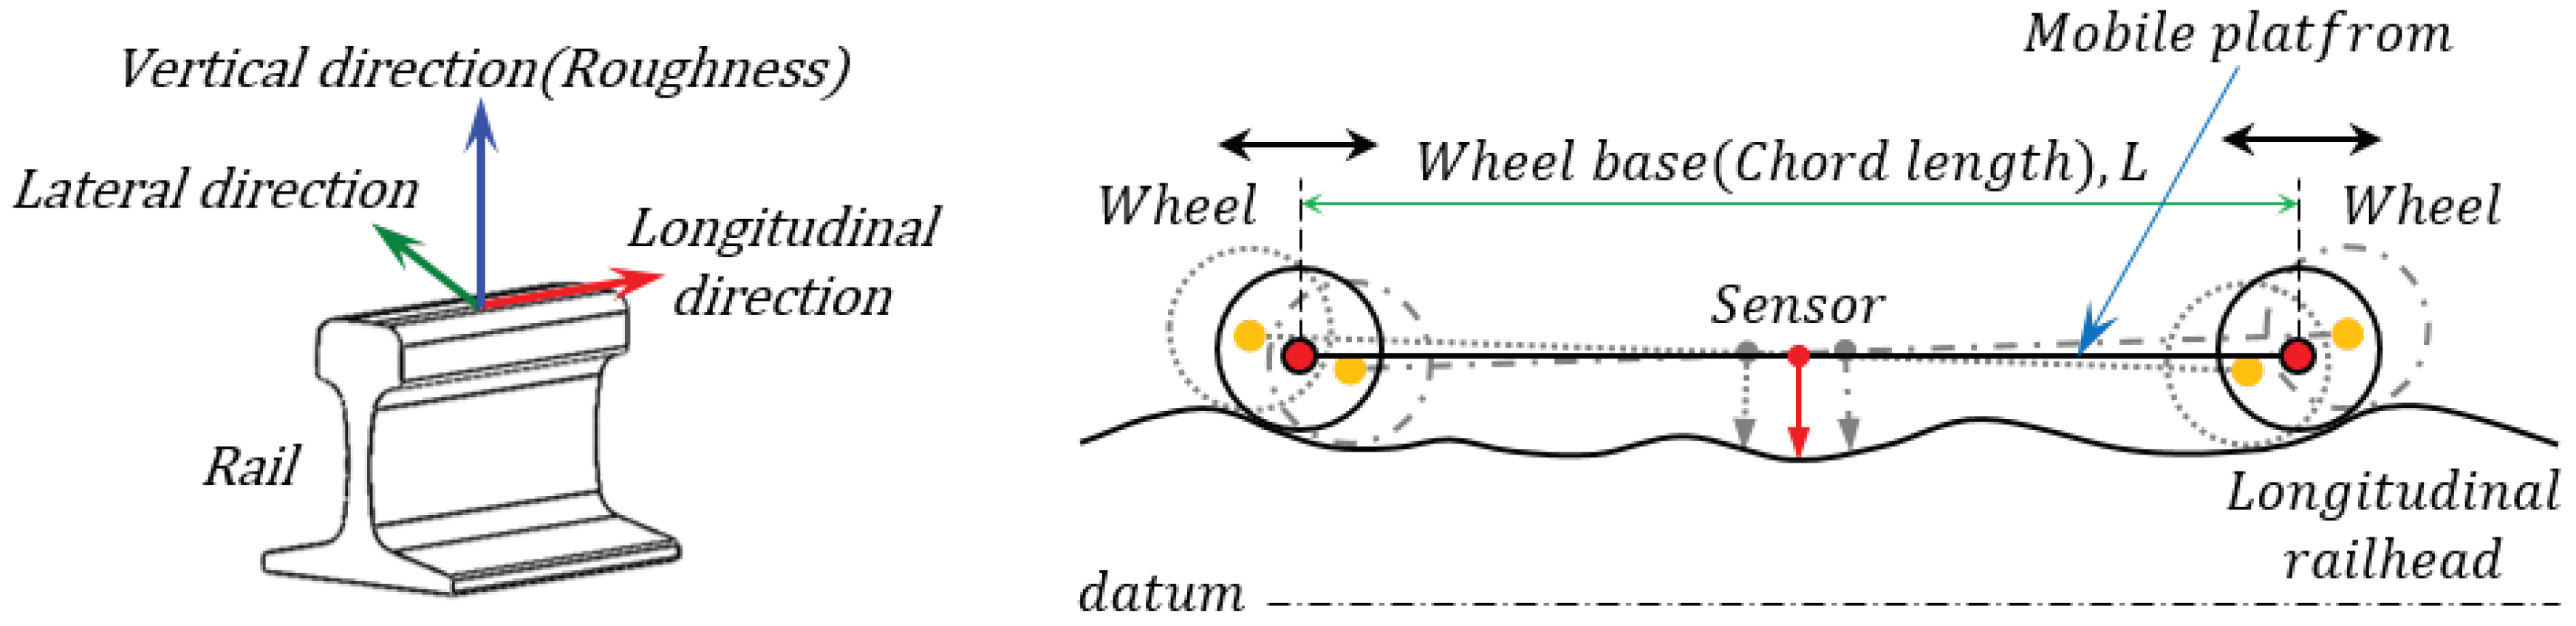 How To Measure Wheel Base >> Sensors Free Full Text Measuring Acoustic Roughness Of A